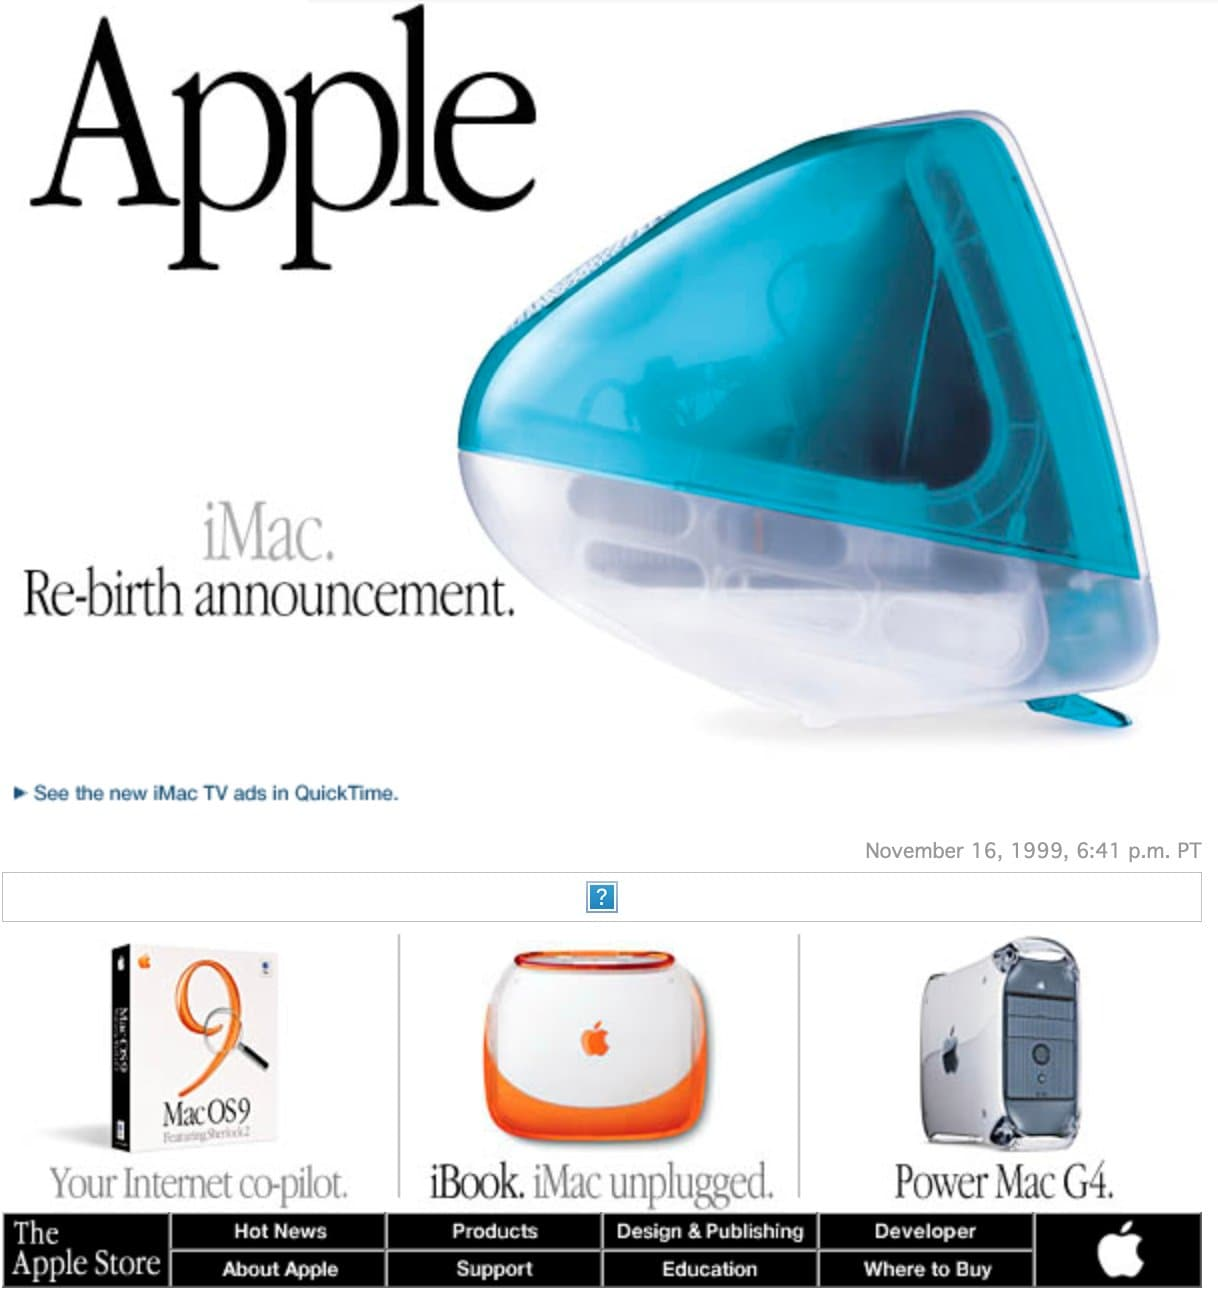 Image from Apple Web site in 1999 showing graphic elements as text